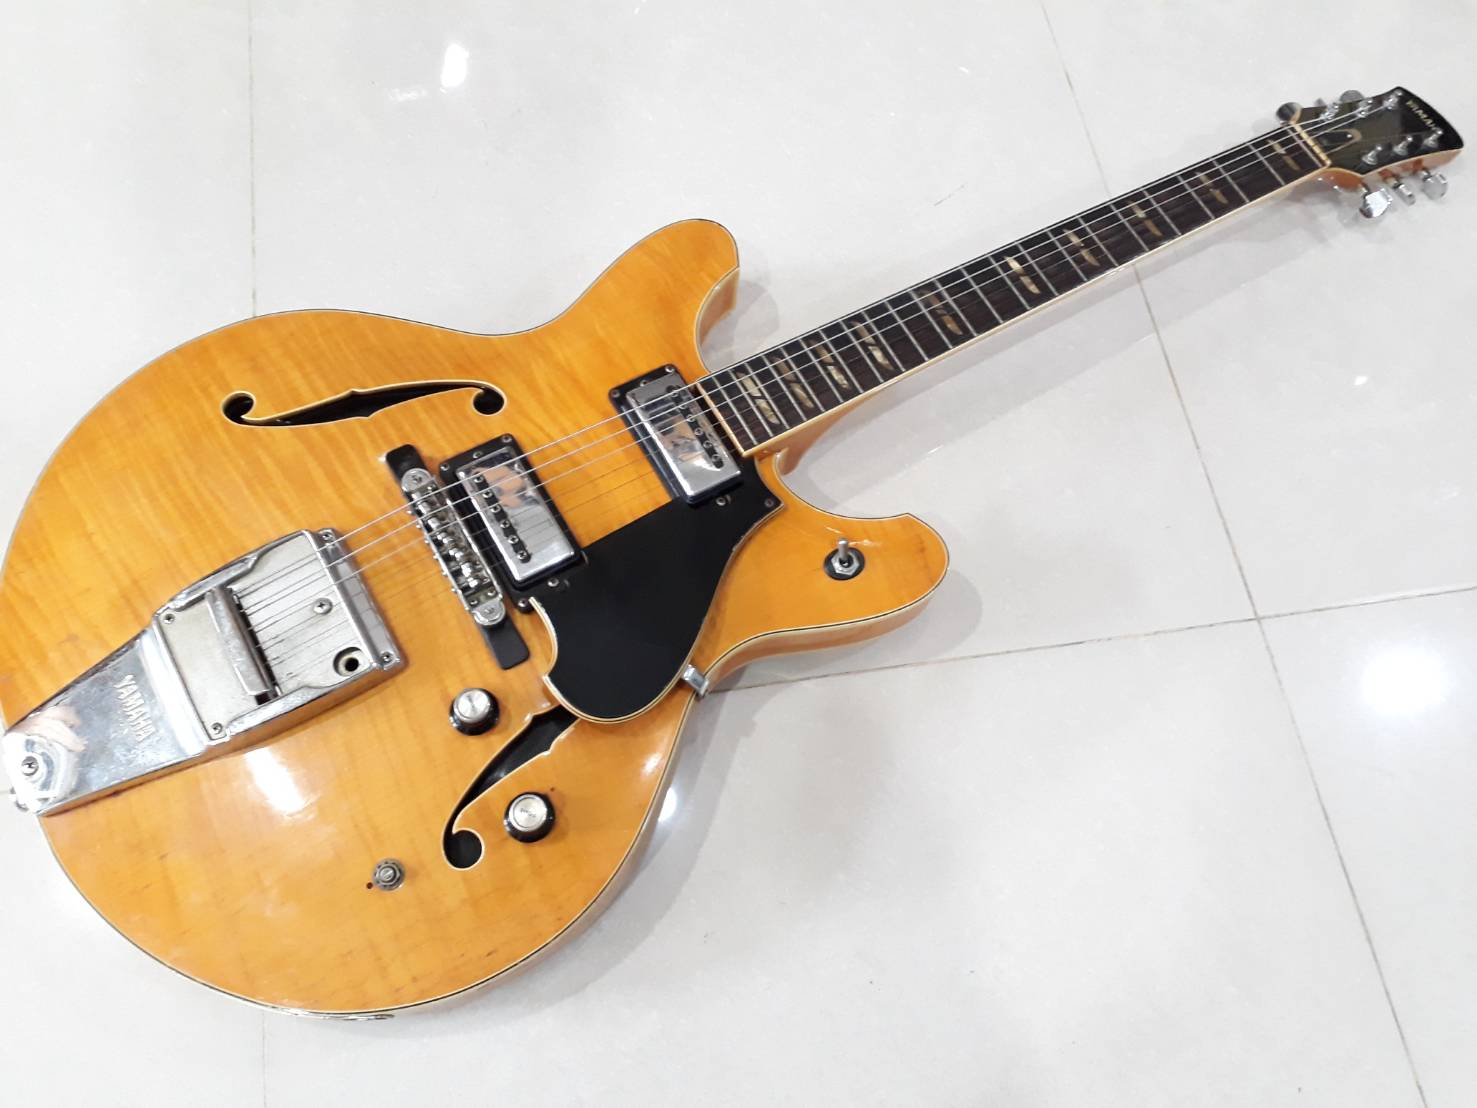 Yamaha SA 50 semi hollow japan 1960s